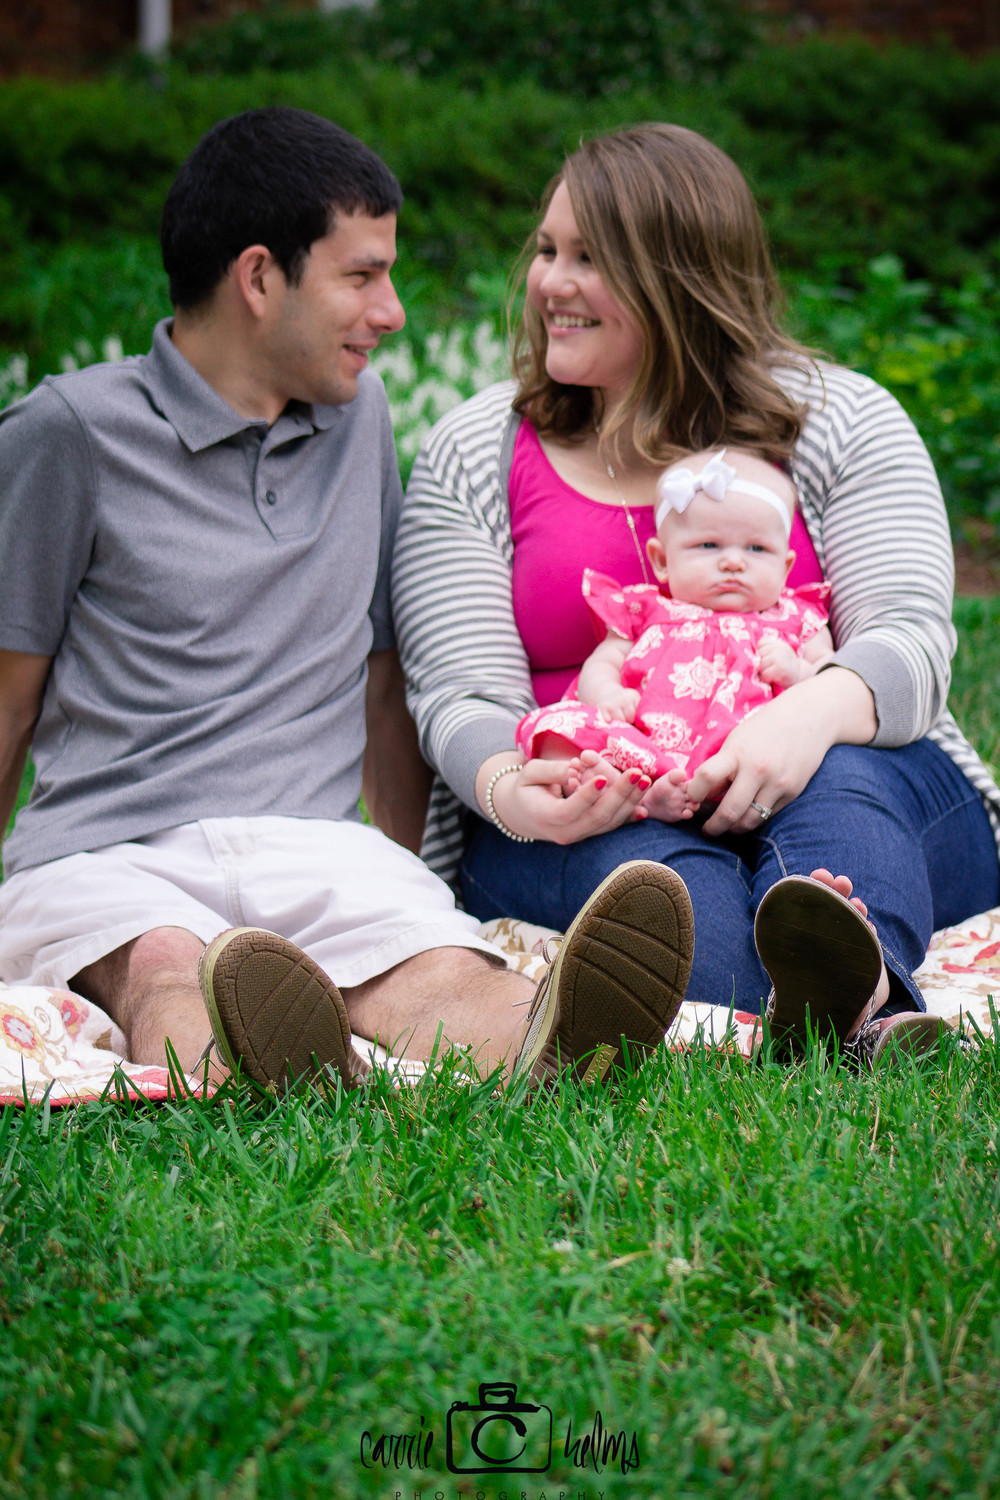 Greensboro Winston Salem Burlington High Point North Carolina Engagement Family Children Photographer -102.JPG